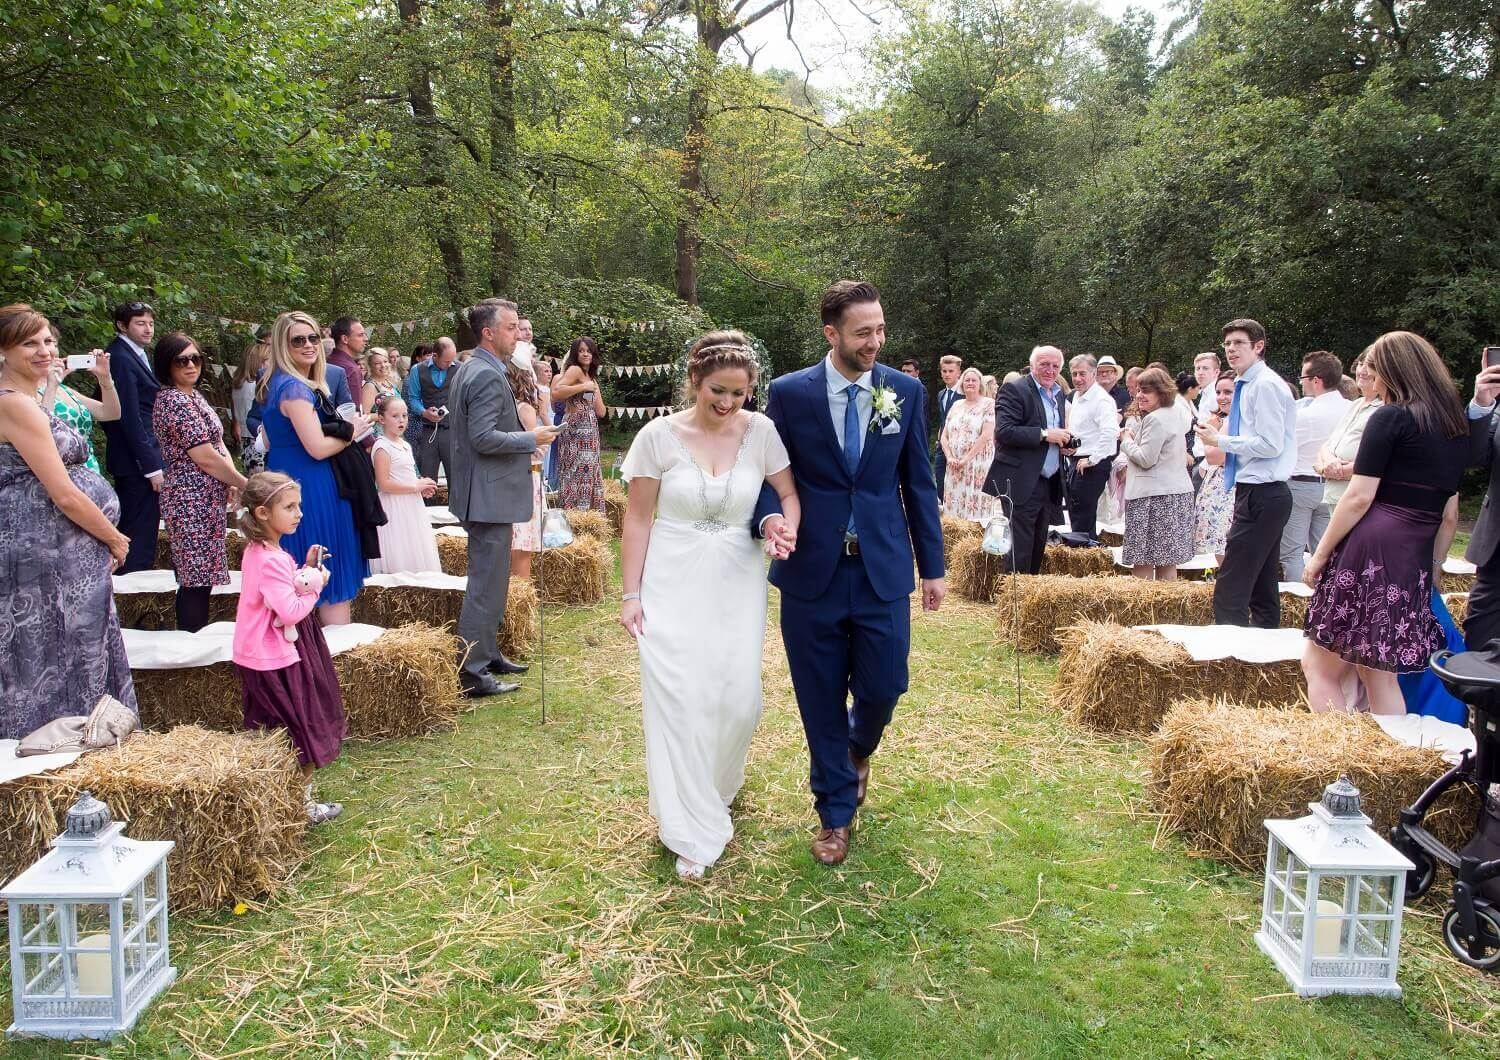 Weddings in the New Forest